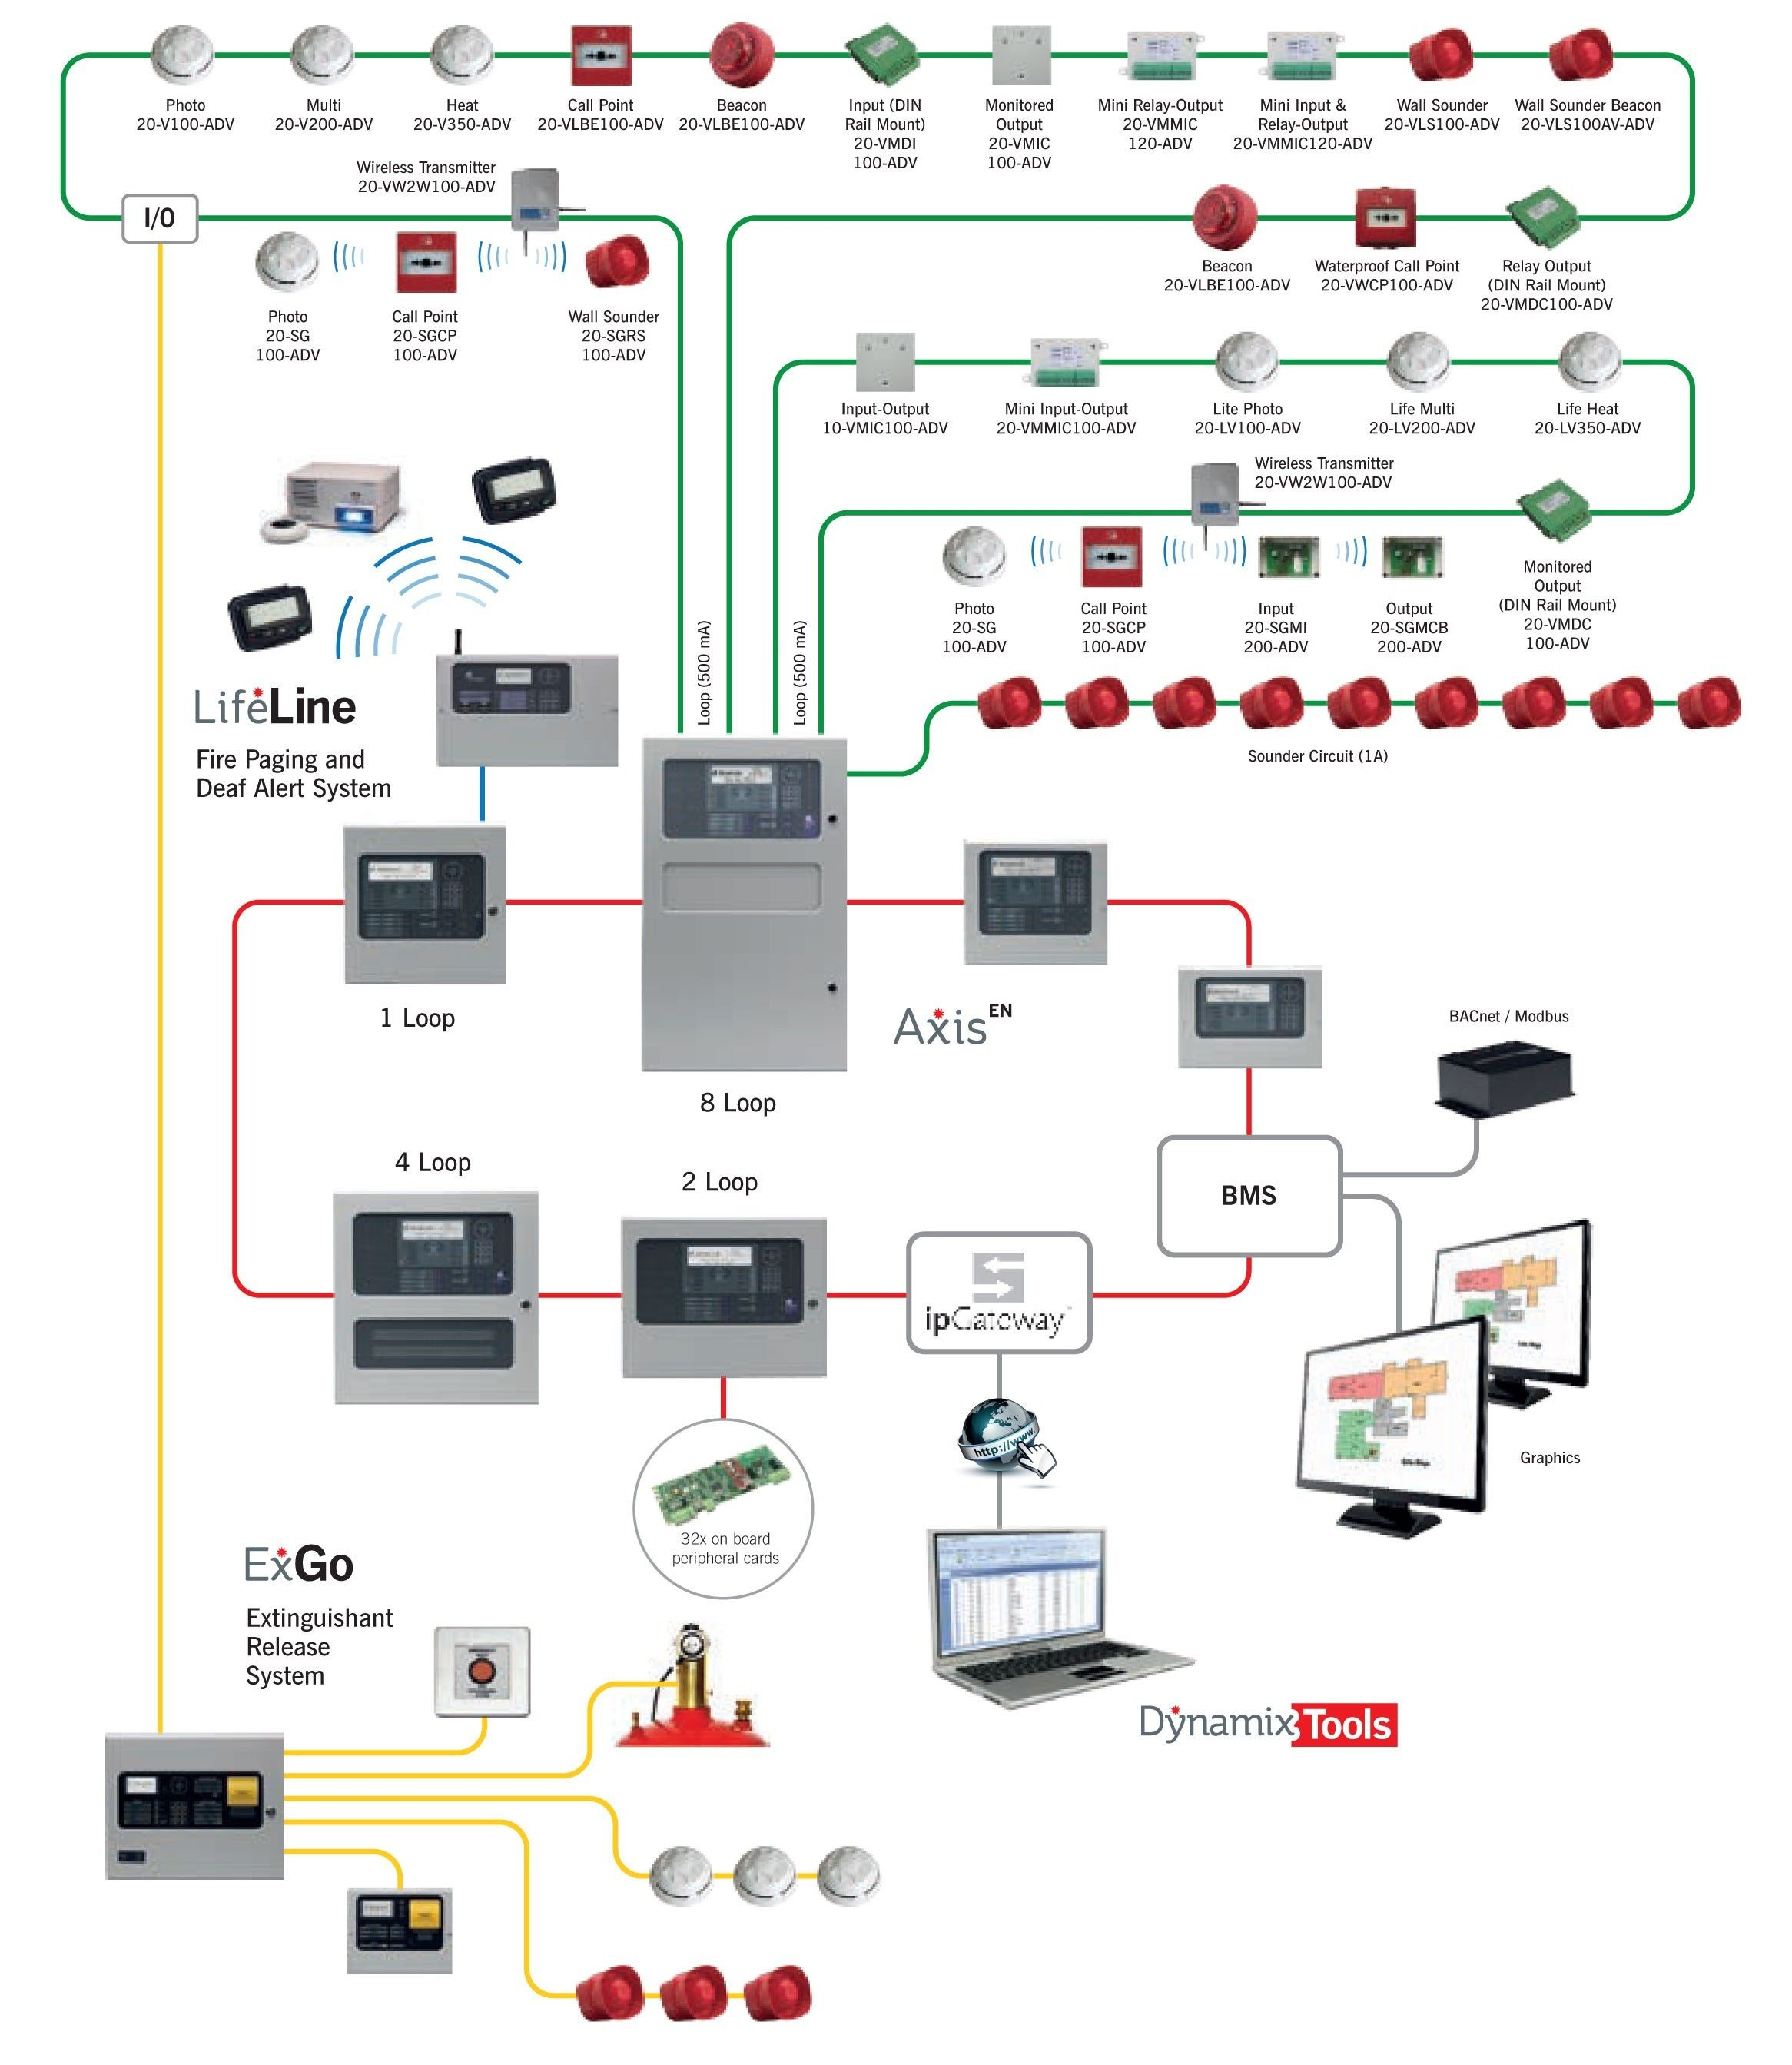 Unique Fire Alarm System Control Module Wiring Diagram Diagram Diagramtemplate Diagramsample Fire Alarm System Fire Alarm Alarm System